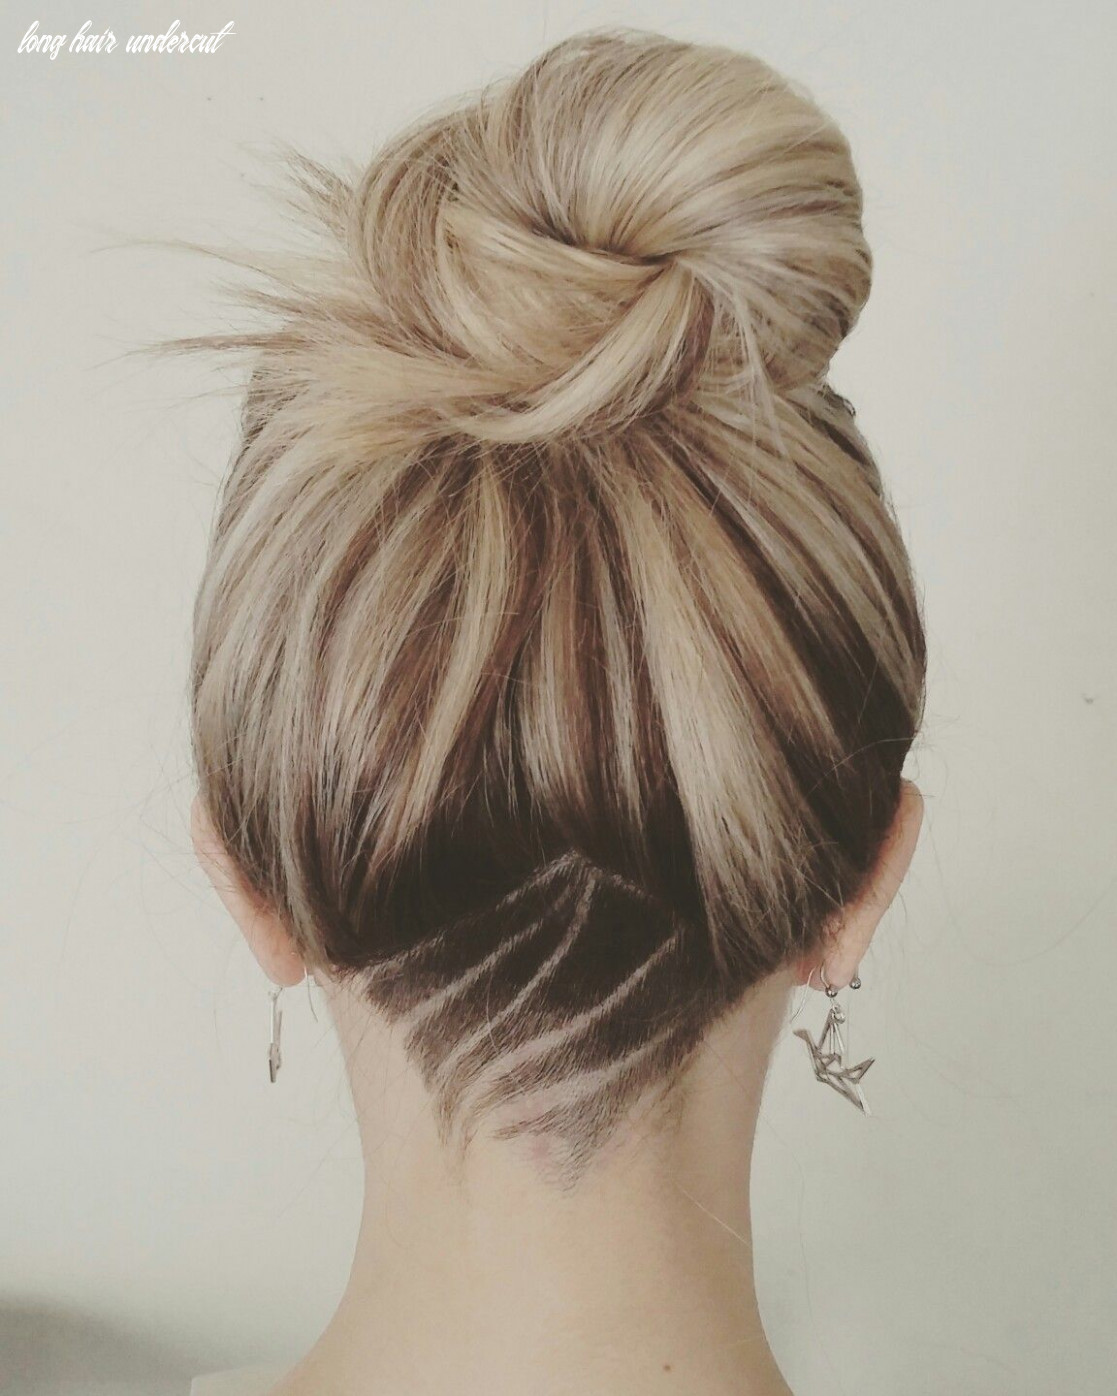 To revisit this article, visit my profile. 10 Long Hair Undercut Undercut Hairstyle